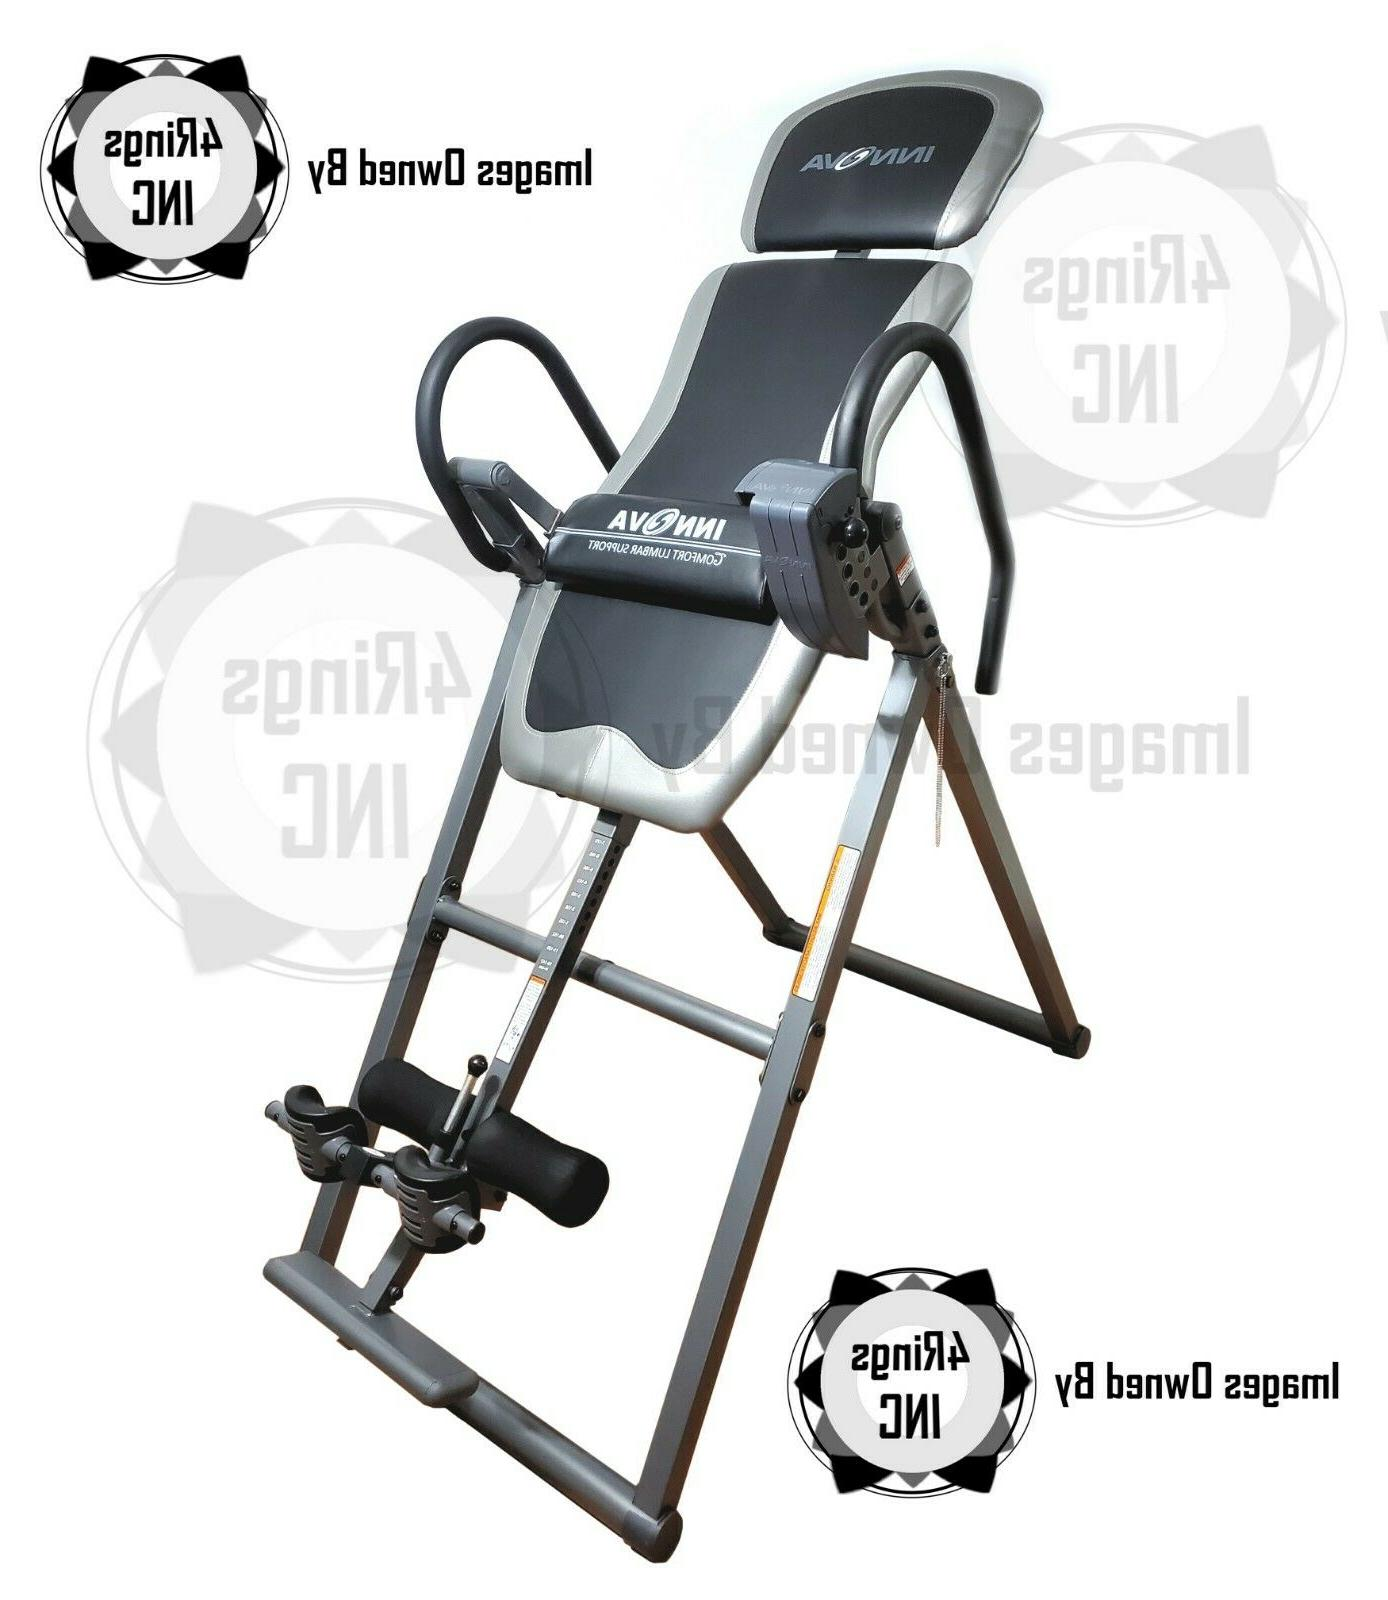 itx9600 heavy duty inversion therapy